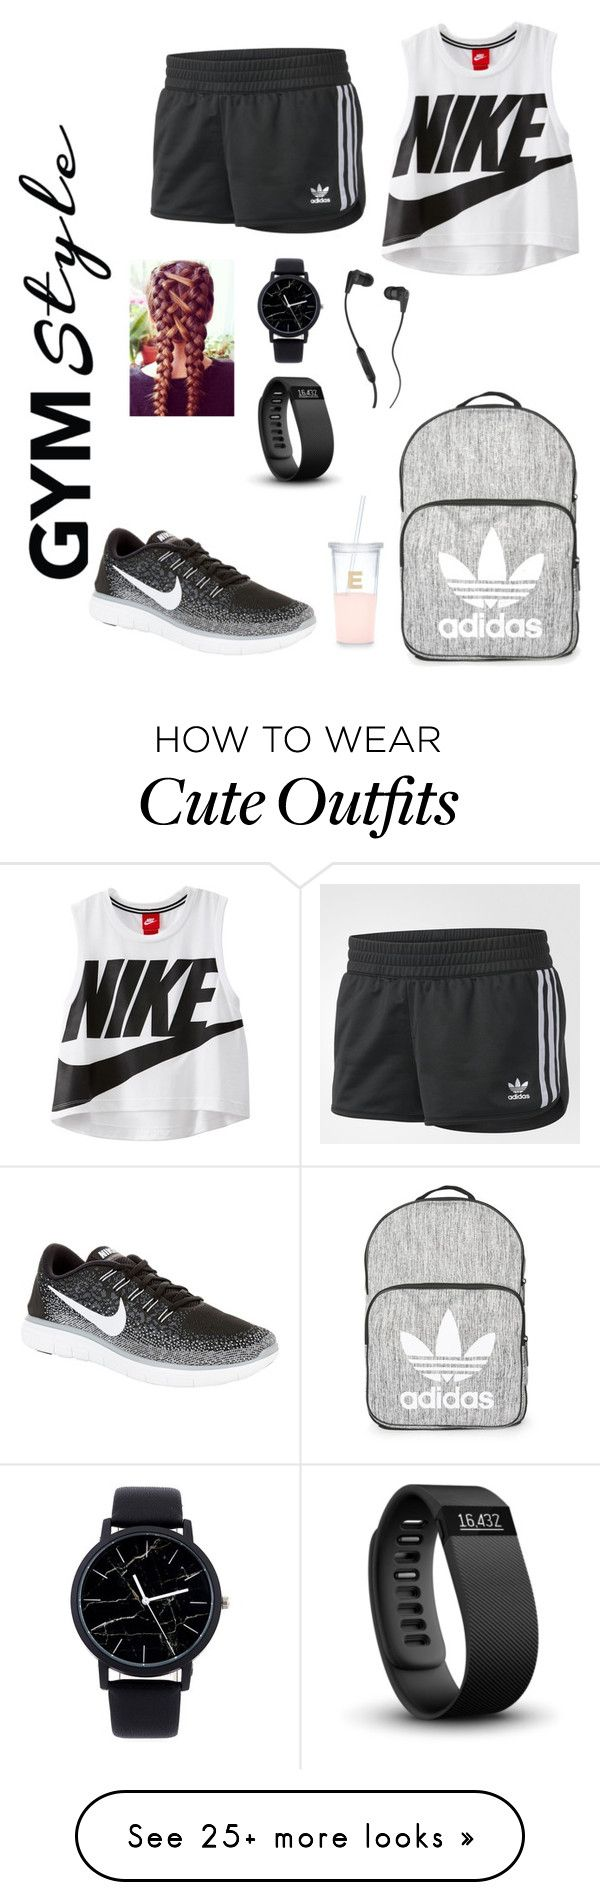 """""""cute track outfit"""" by heatherleah81 on Polyvore featuring adidas, NIKE, Topshop, Fitbit, Skullcandy and Kate Spade"""